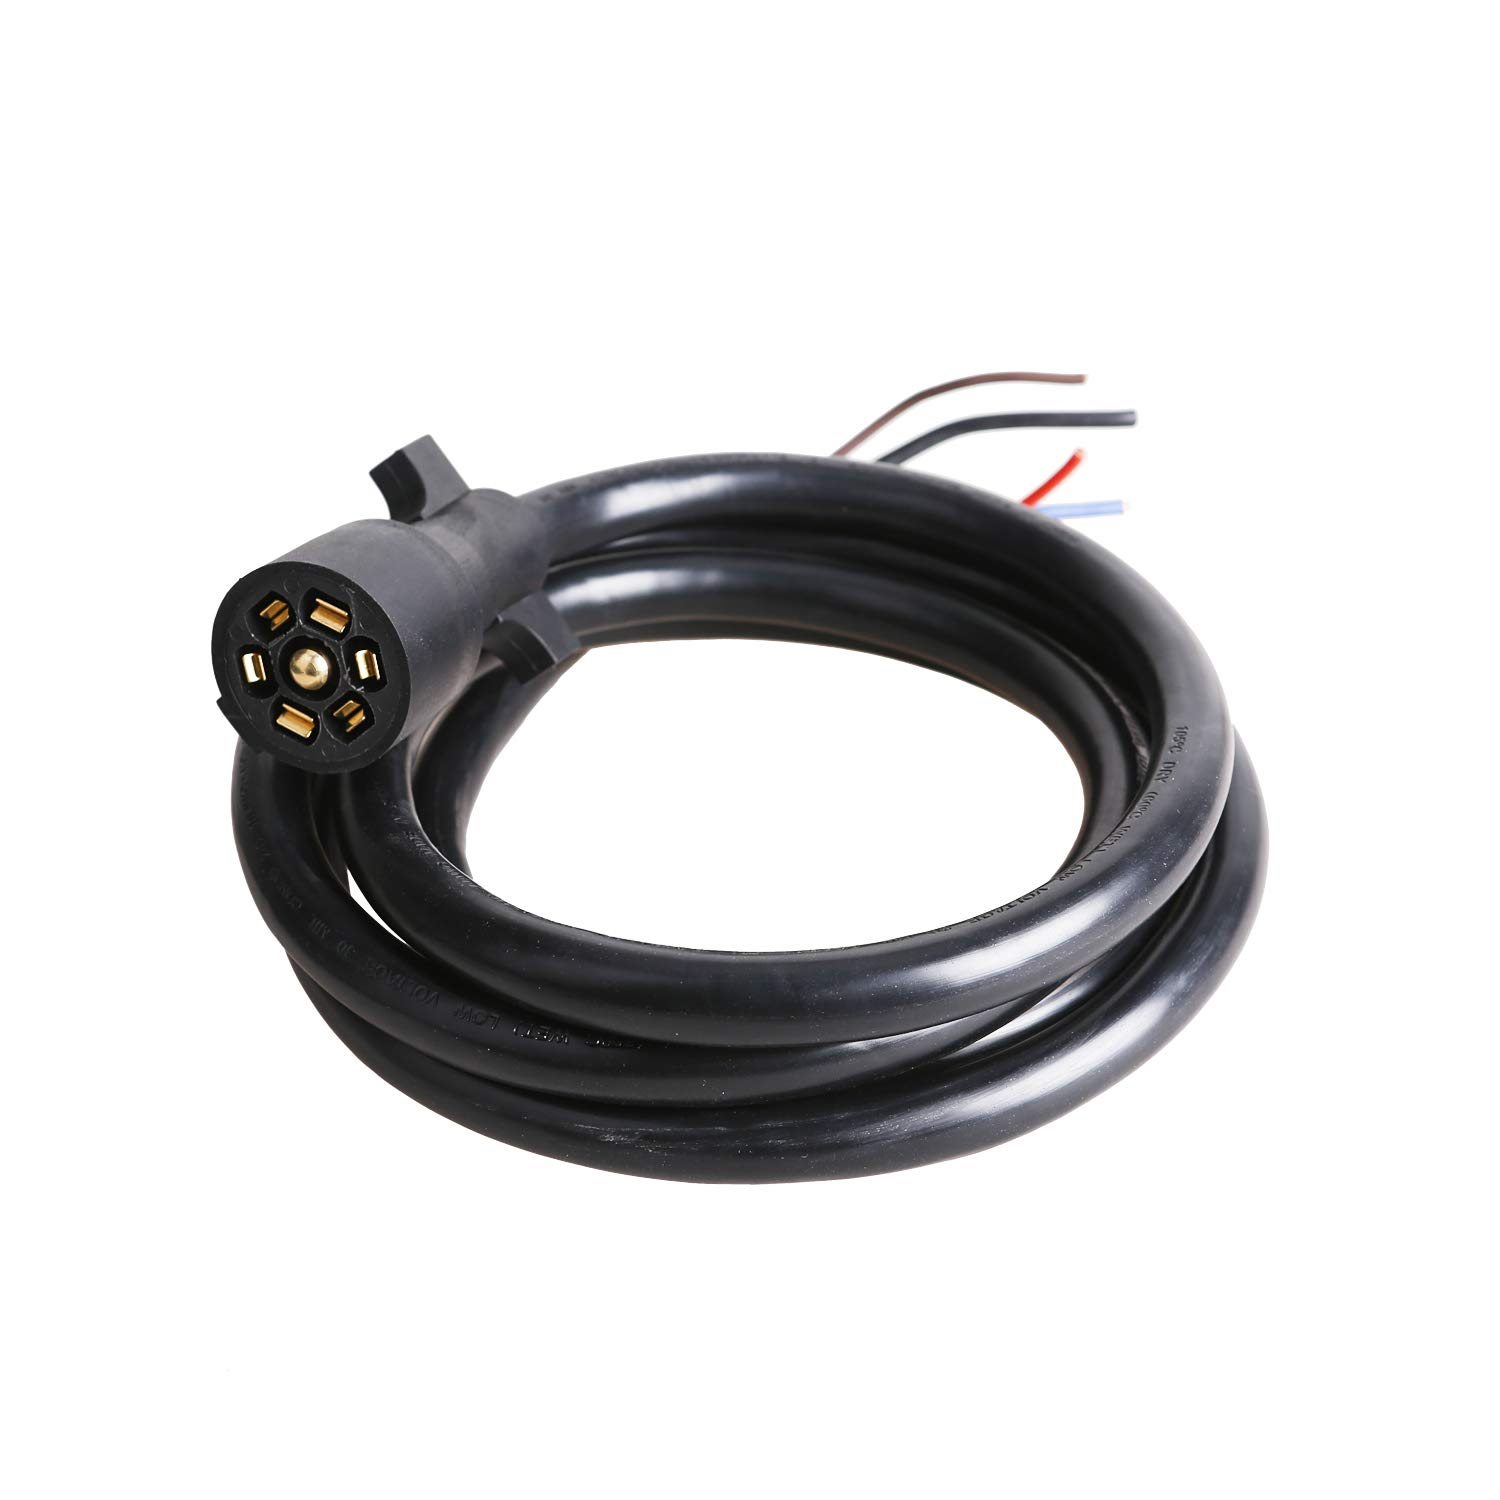 EPICORD Heavy Duty 7 Way Plug Inline Trailer Cord with Double Prongs Connector - 8 Feet, Weatherproof